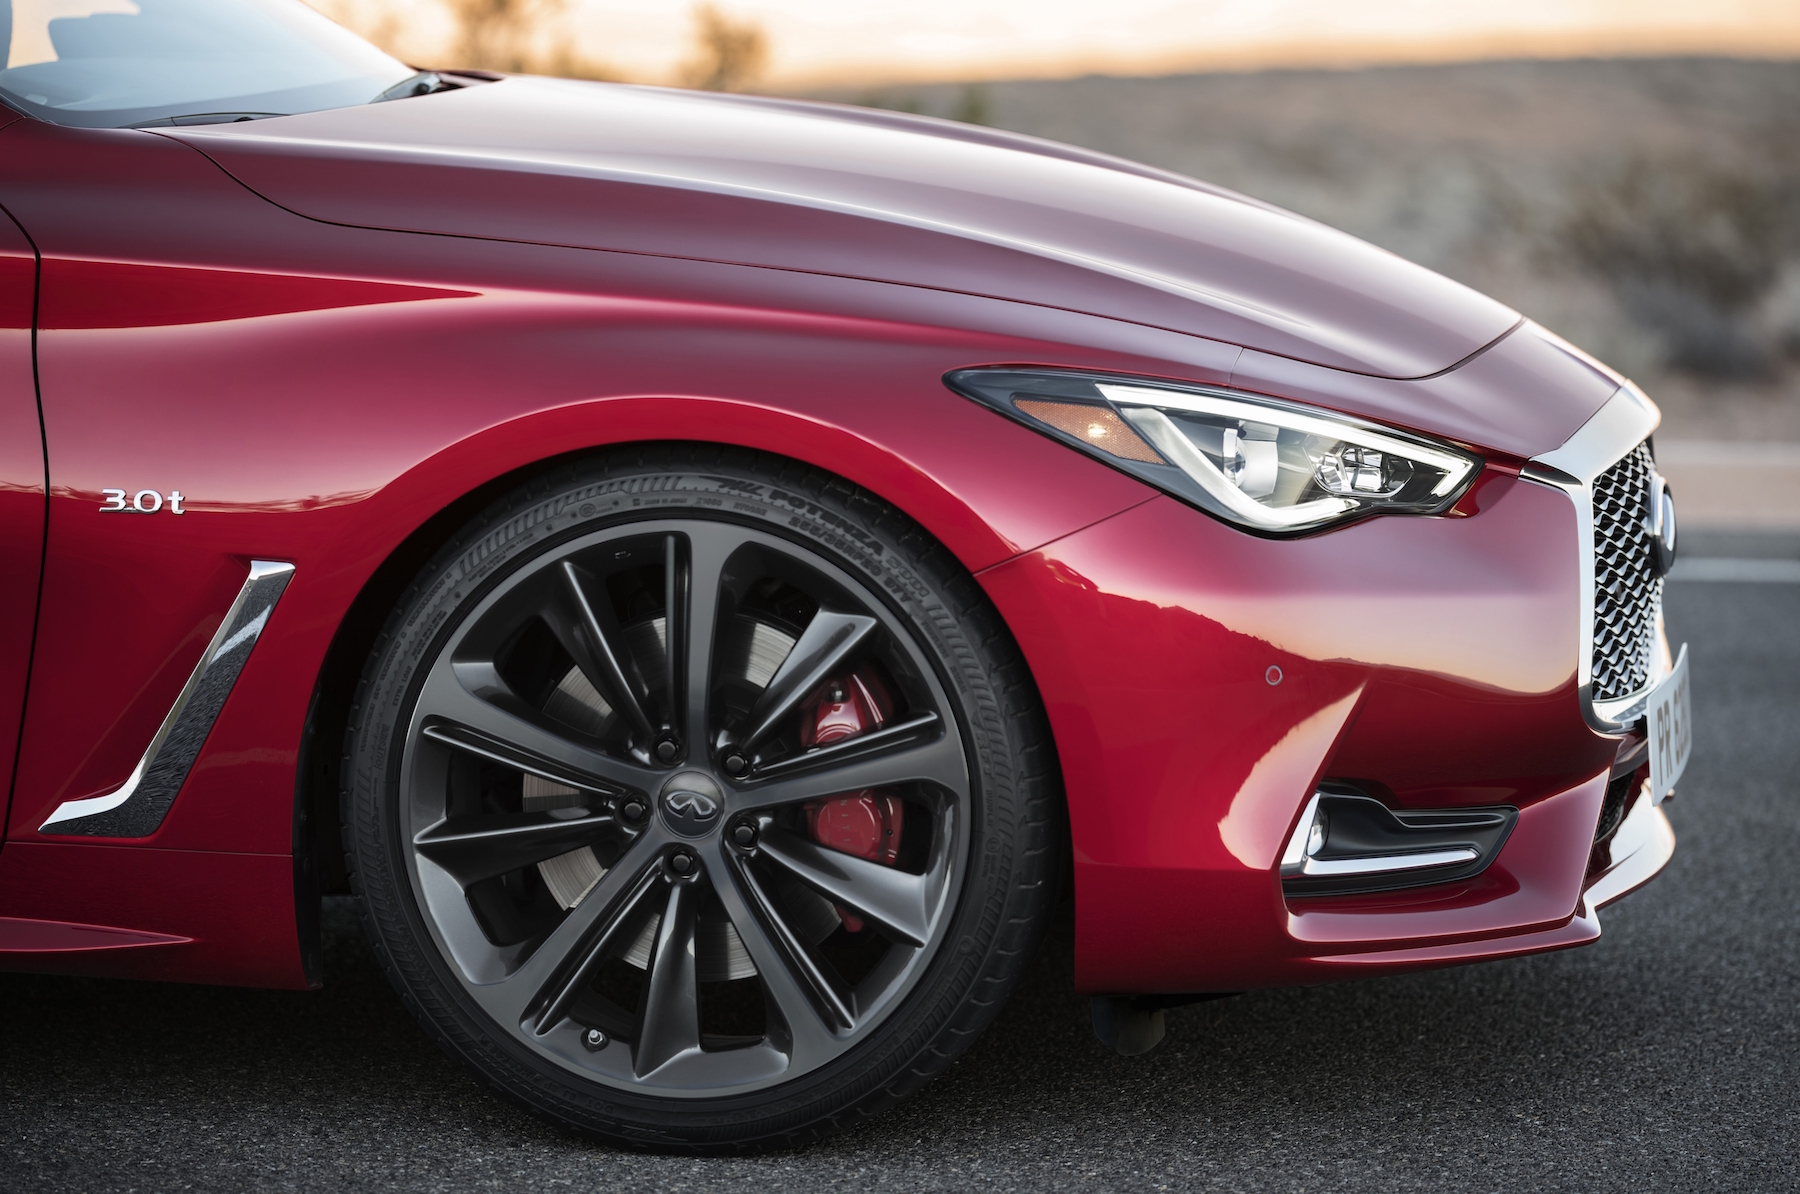 The all-new 2017 INFINITI Q60, a style leader since its original inception, offers a compelling combination of daring design and exhilarating performance and dynamics. The third-generation of INFINITI's renowned sports coupe is offered in a range of two-wheel and all-wheel drive configurations and powerplants – including the 3.0-liter V6 twin-turbo that it shares with the popular INFINITI Q50 sports sedan.